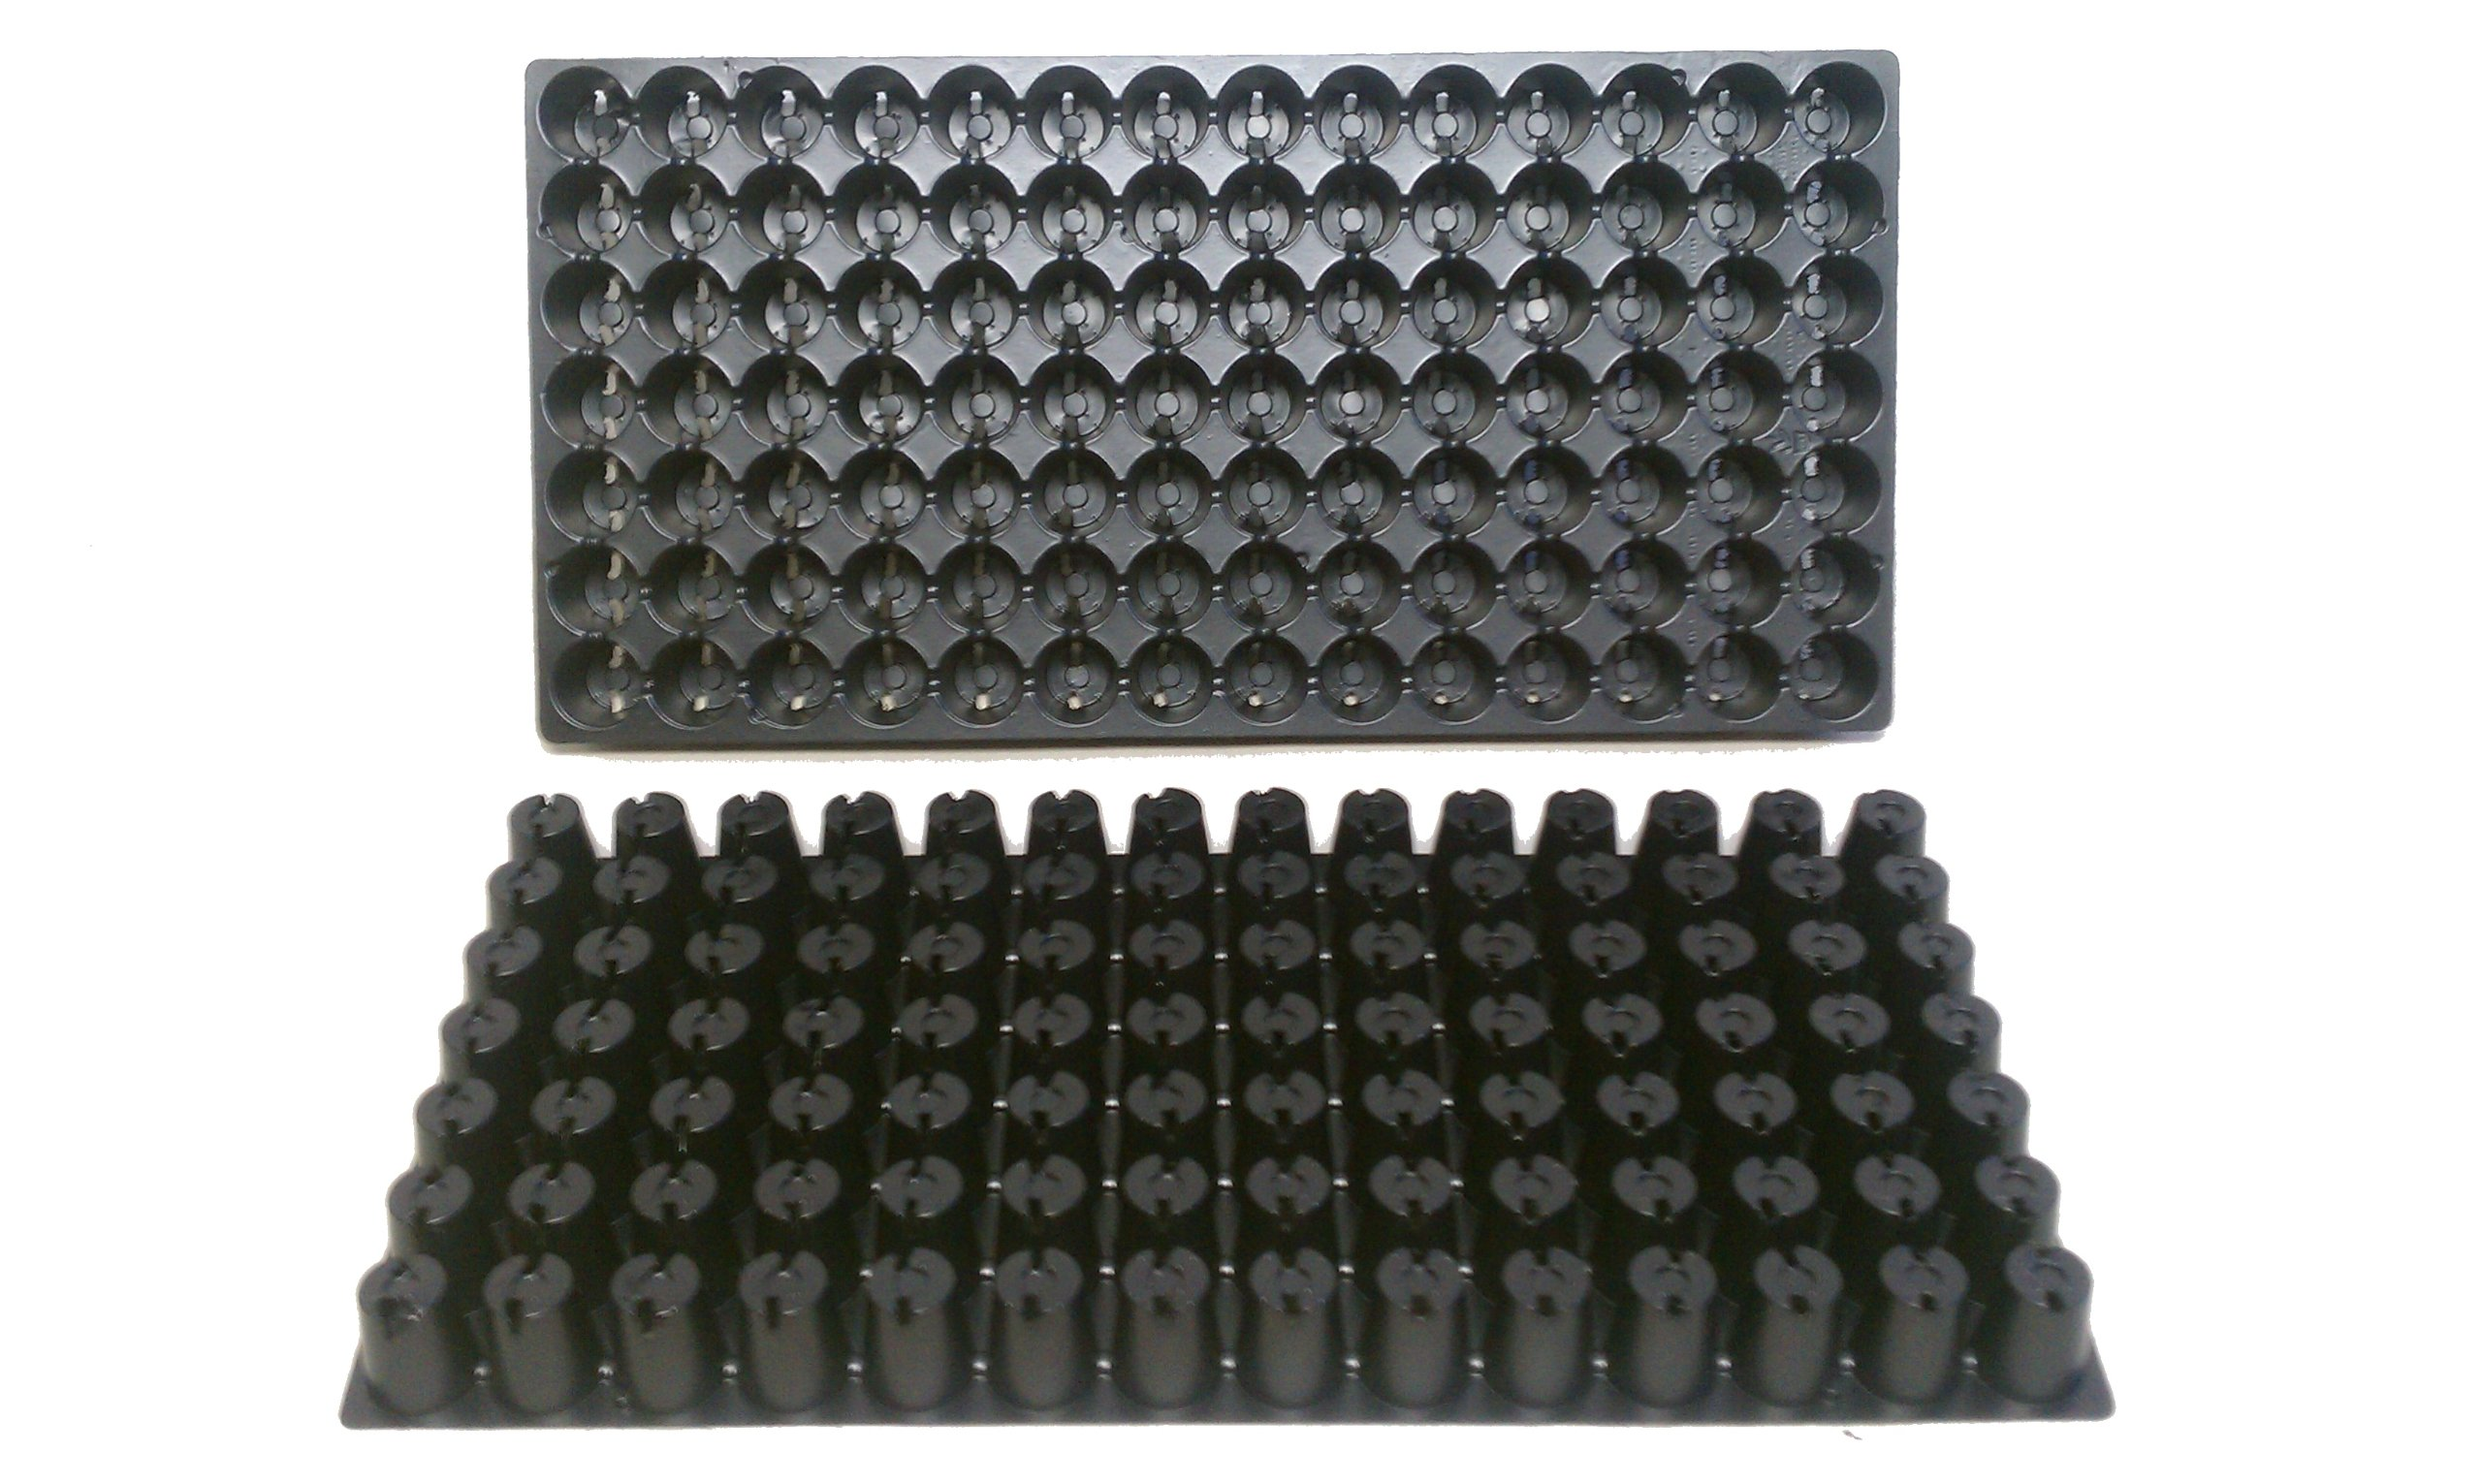 100 Plastic Seed Starting Trays - Each Tray Has 98 Cells ~ Cells Are 1 1/4'' Round X 1 1/2'' Deep. Great Propagation Trays - Full Case